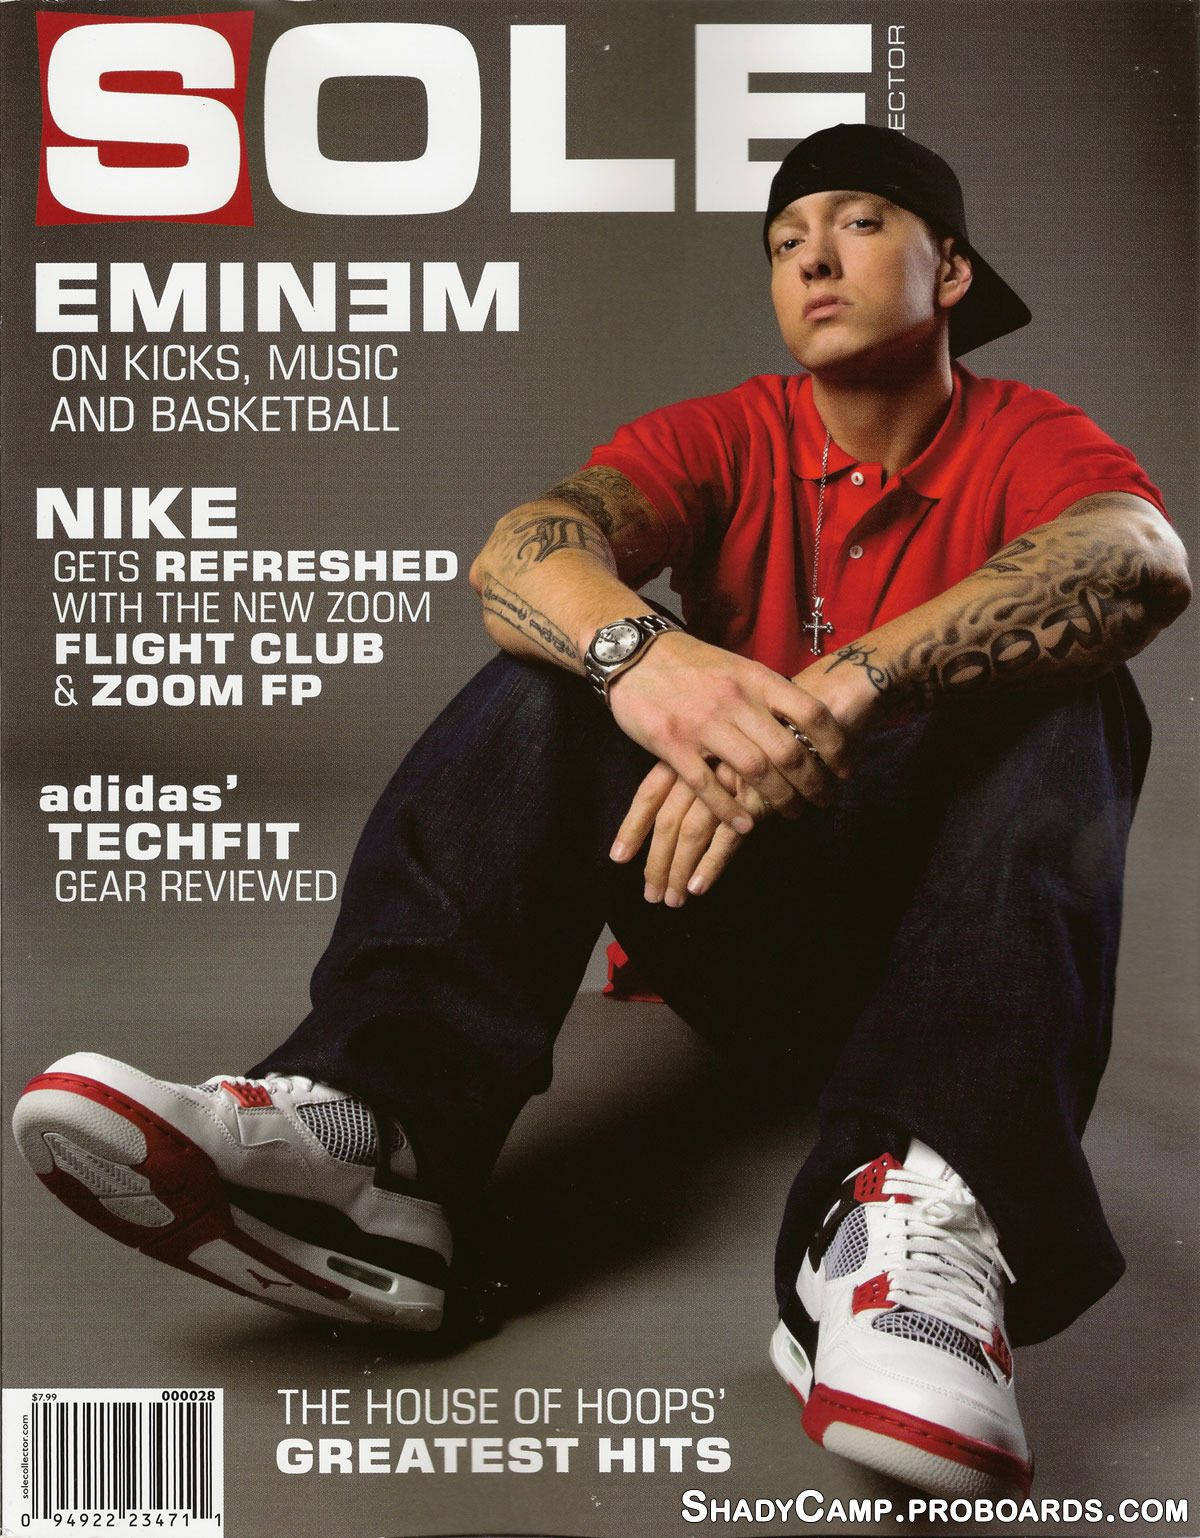 Happy Birthday Eminem: A Look Back at Slim Shady's Nike Kicks